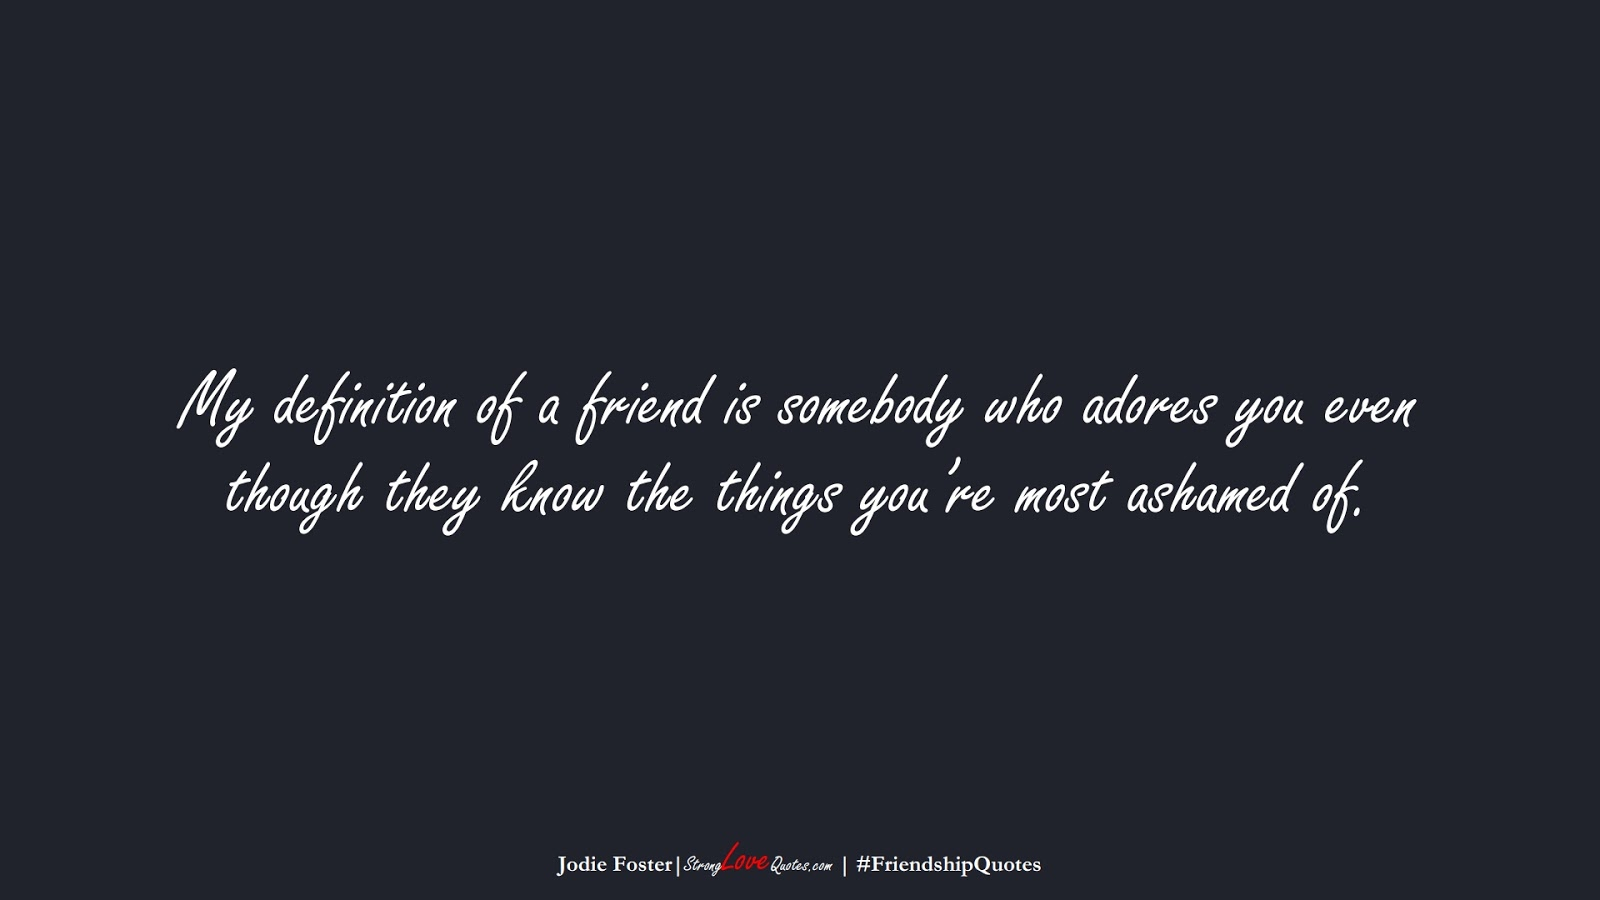 My definition of a friend is somebody who adores you even though they know the things you're most ashamed of. (Jodie Foster);  #FriendshipQuotes